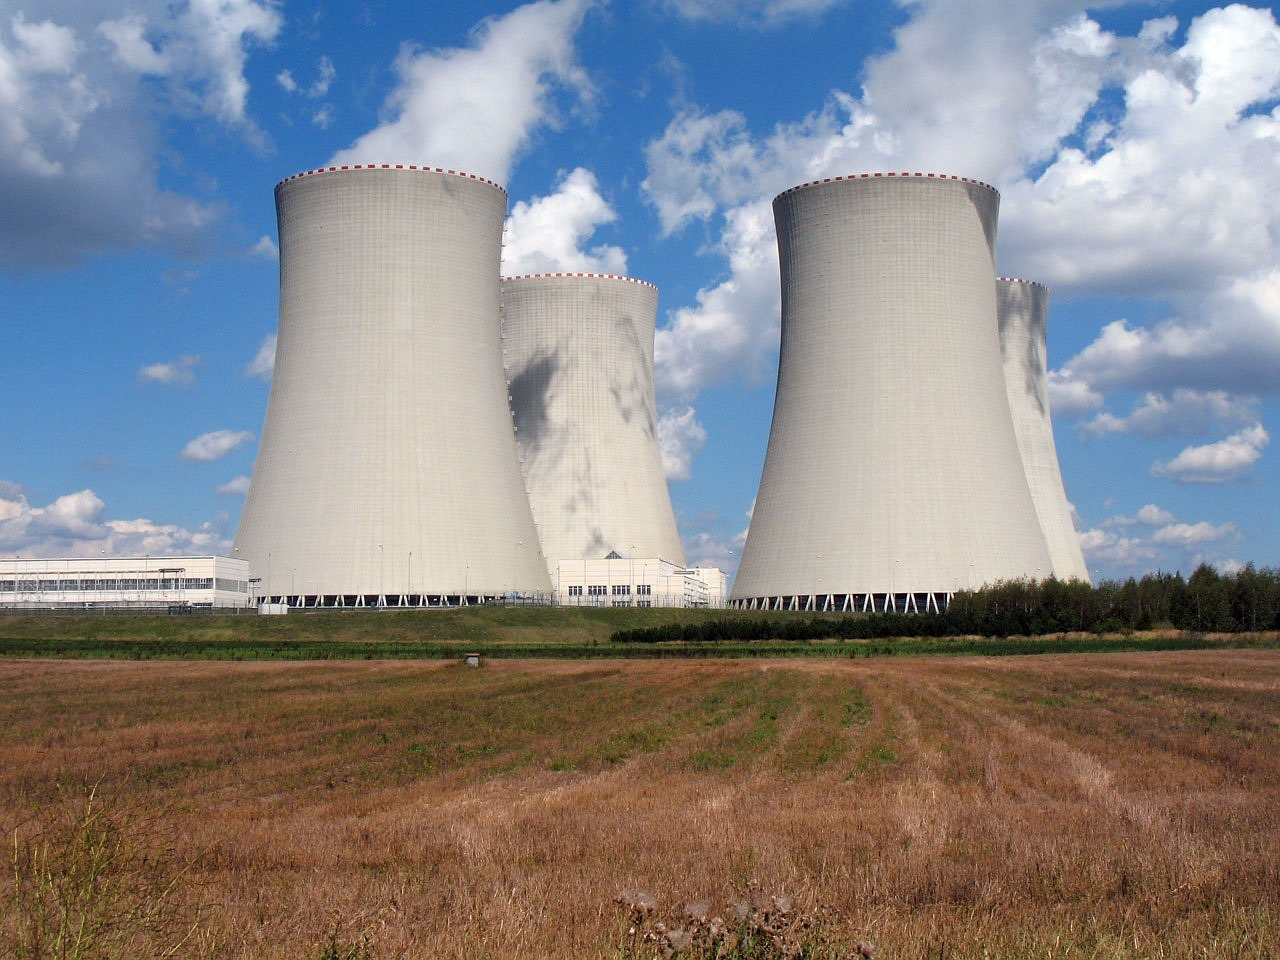 Nuclear Regulatory Commission adopts watered down nuclear plant safety regulations